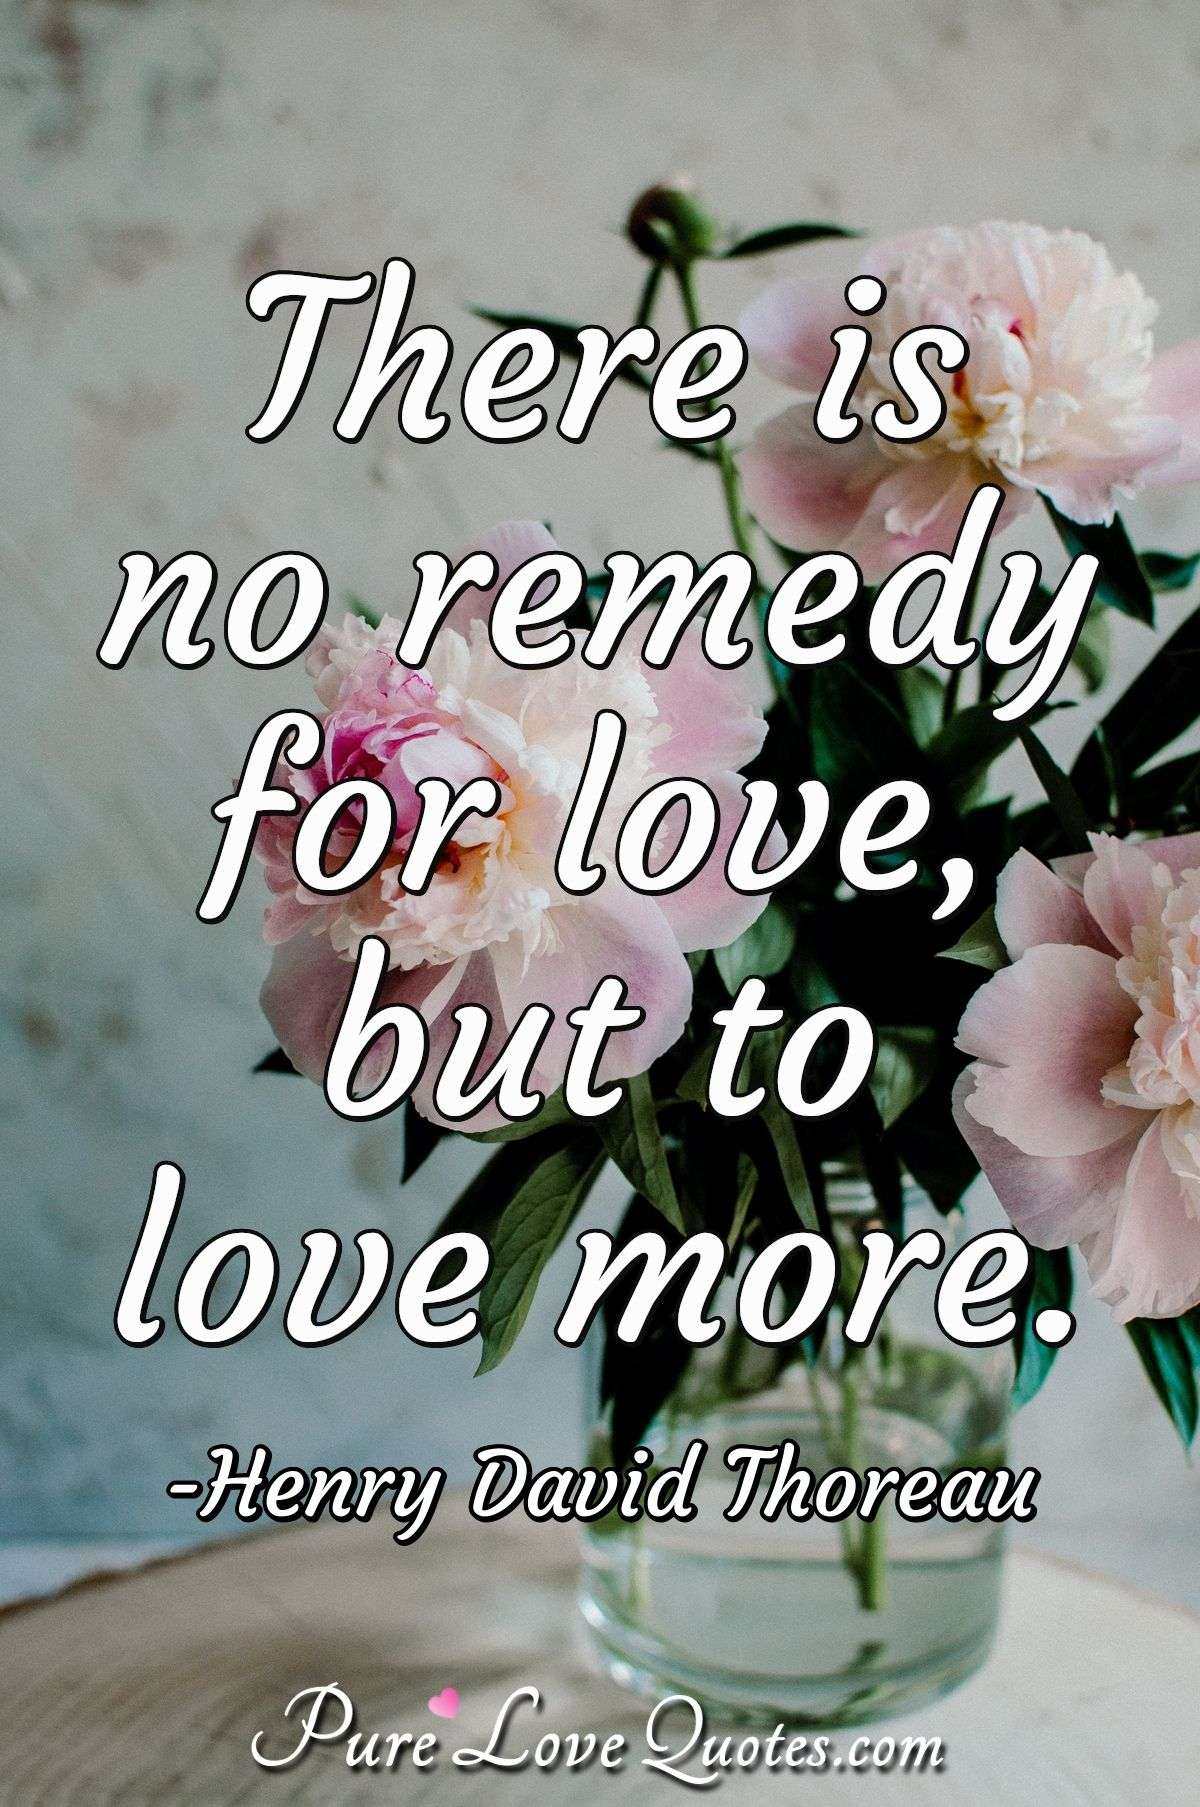 There is no remedy for love, but to love more. - Henry David Thoreau